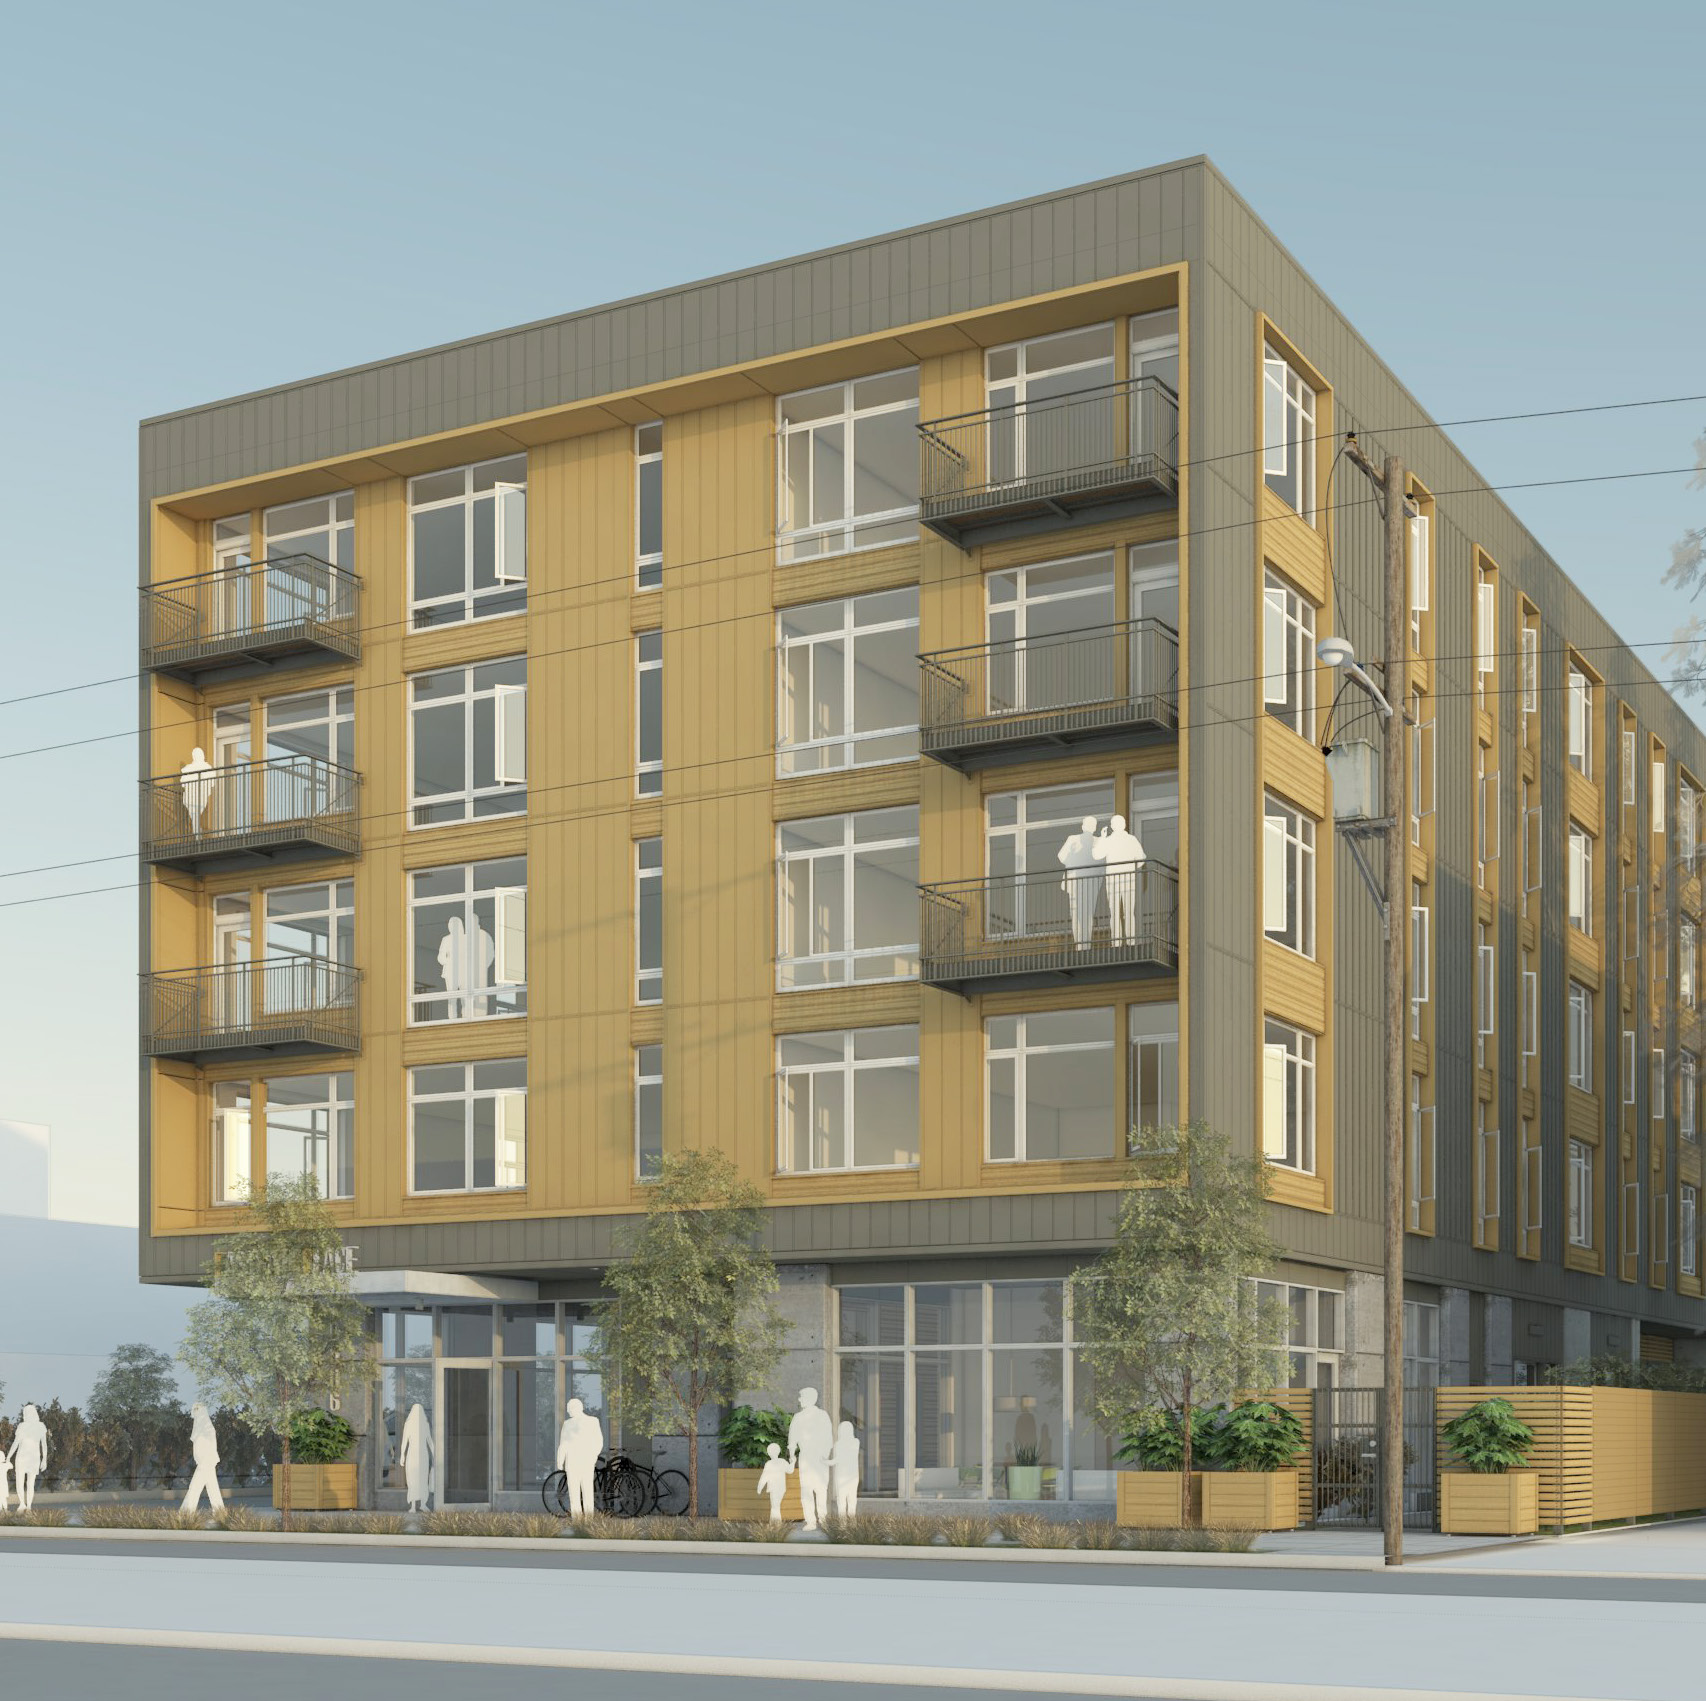 Apartments On Outer East Burnside Approved By Design